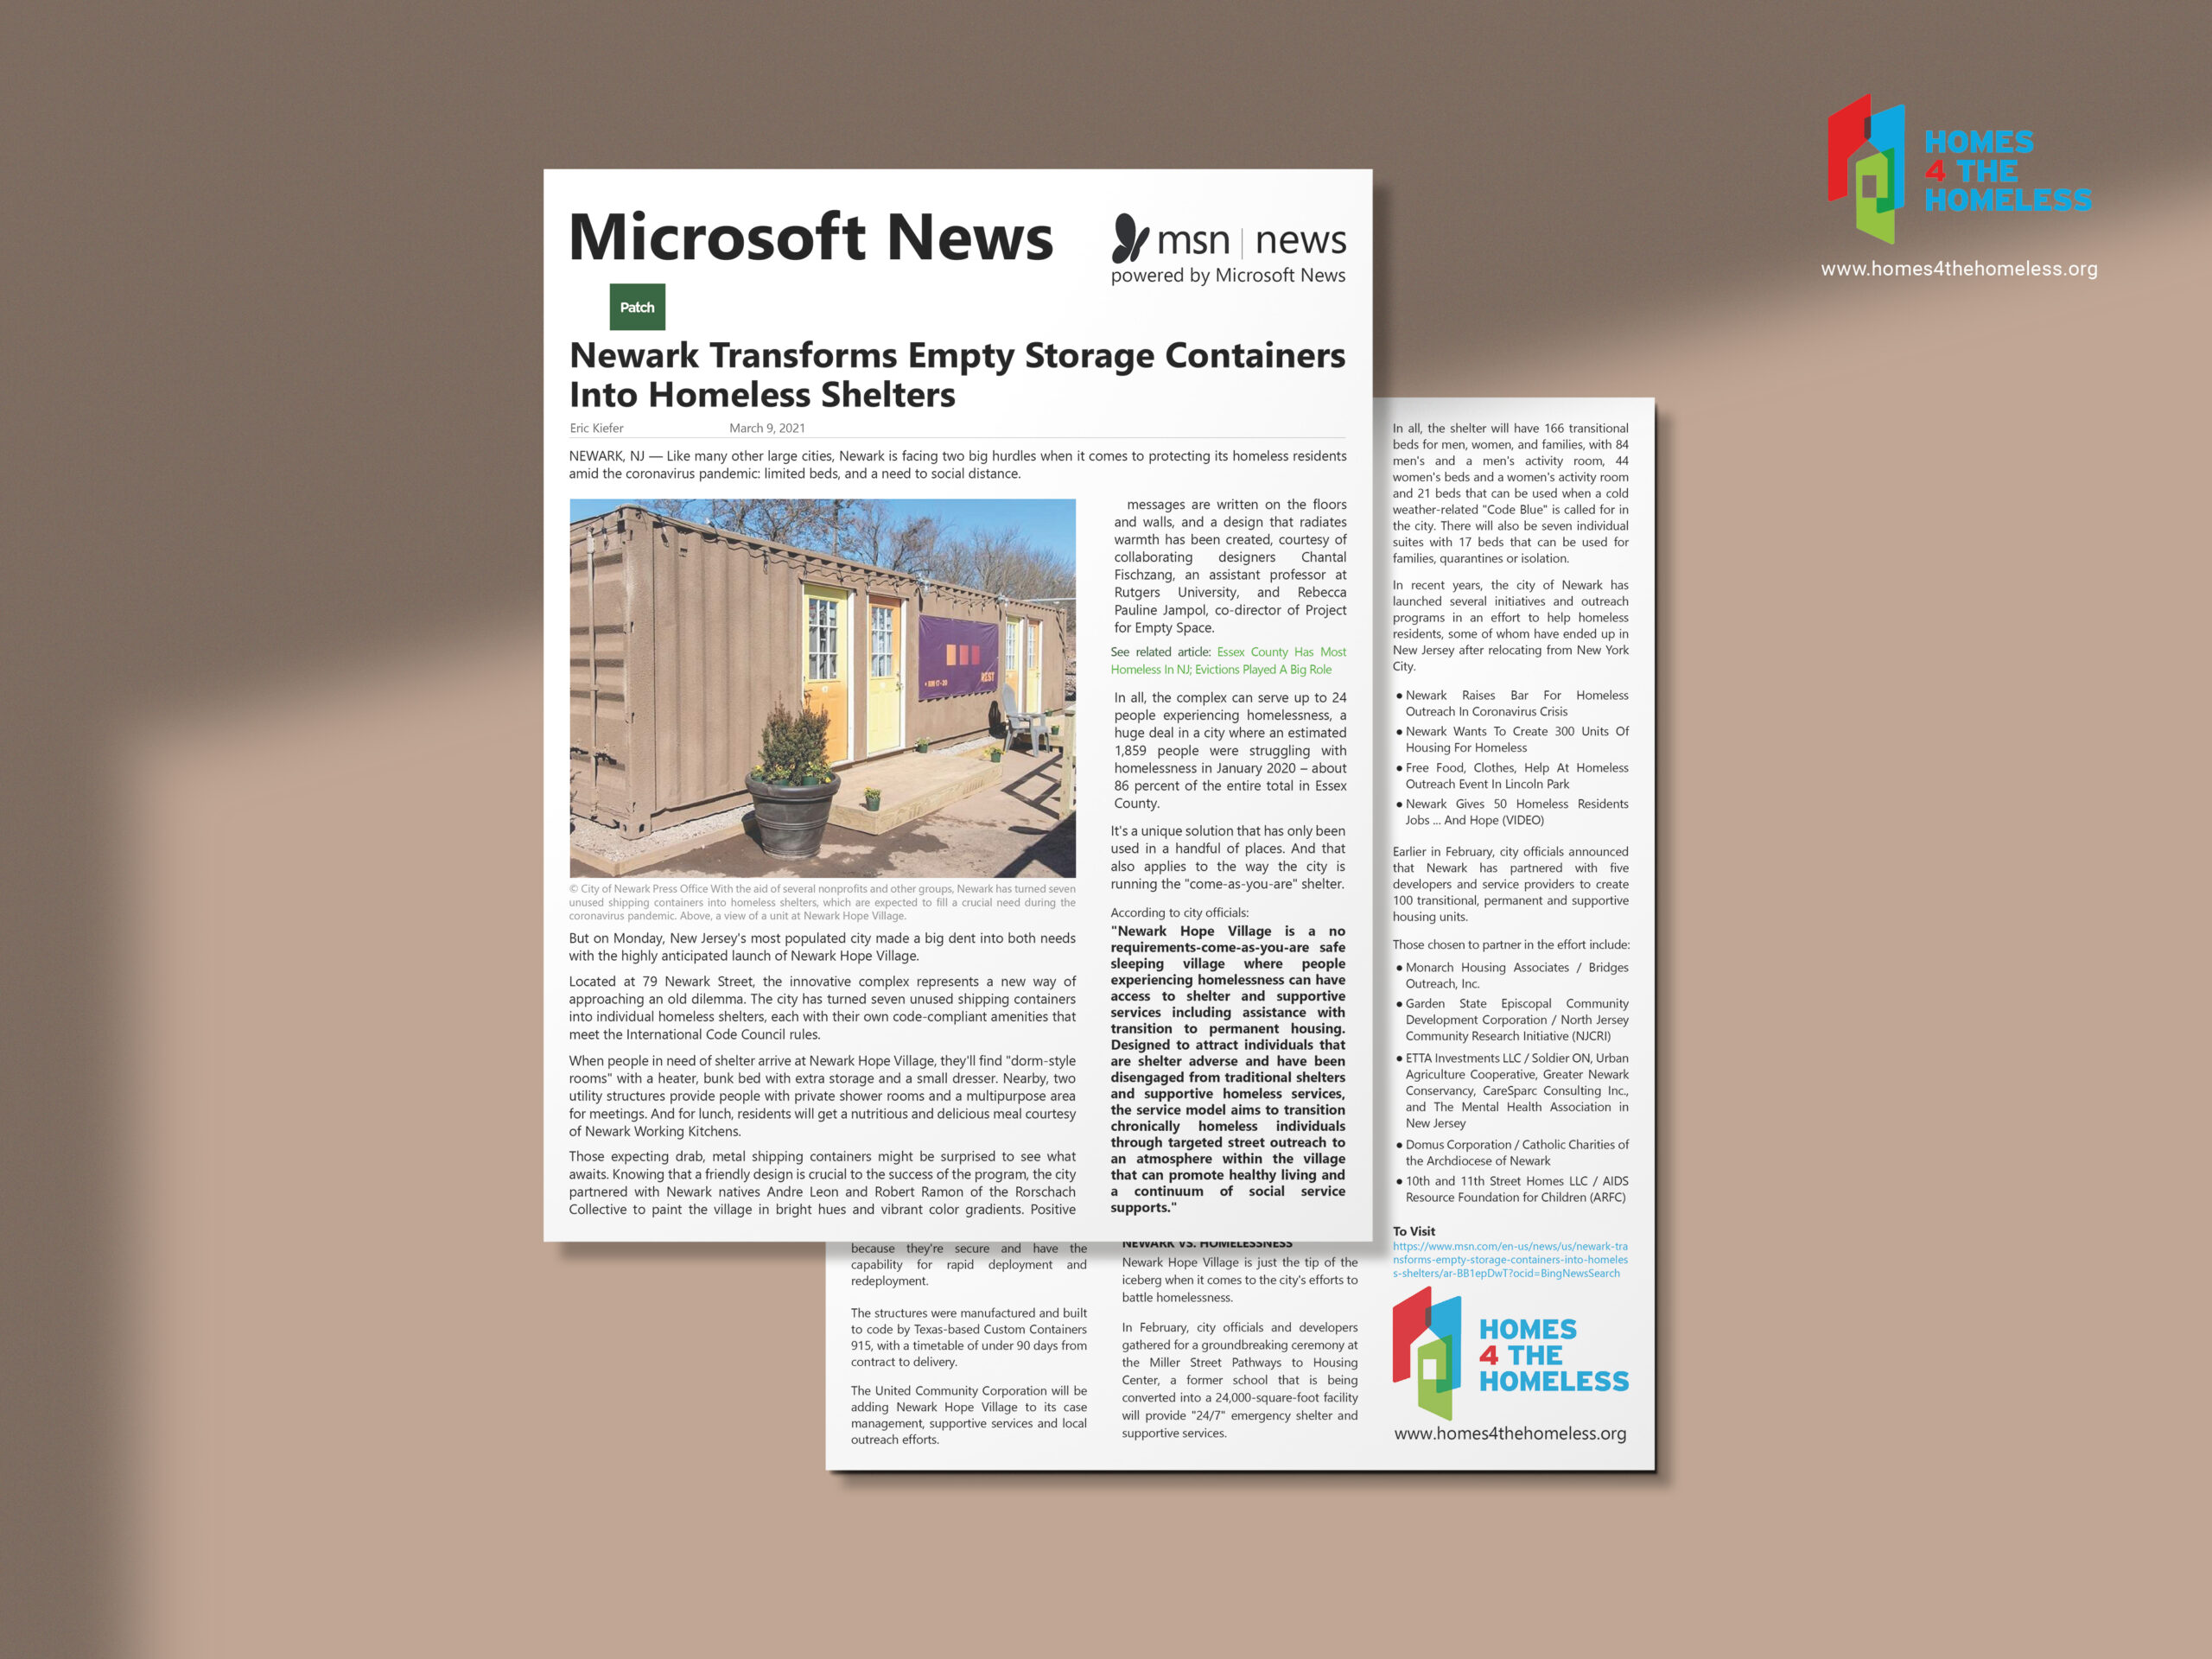 Microsoft News article March 9, 2021 via Patch